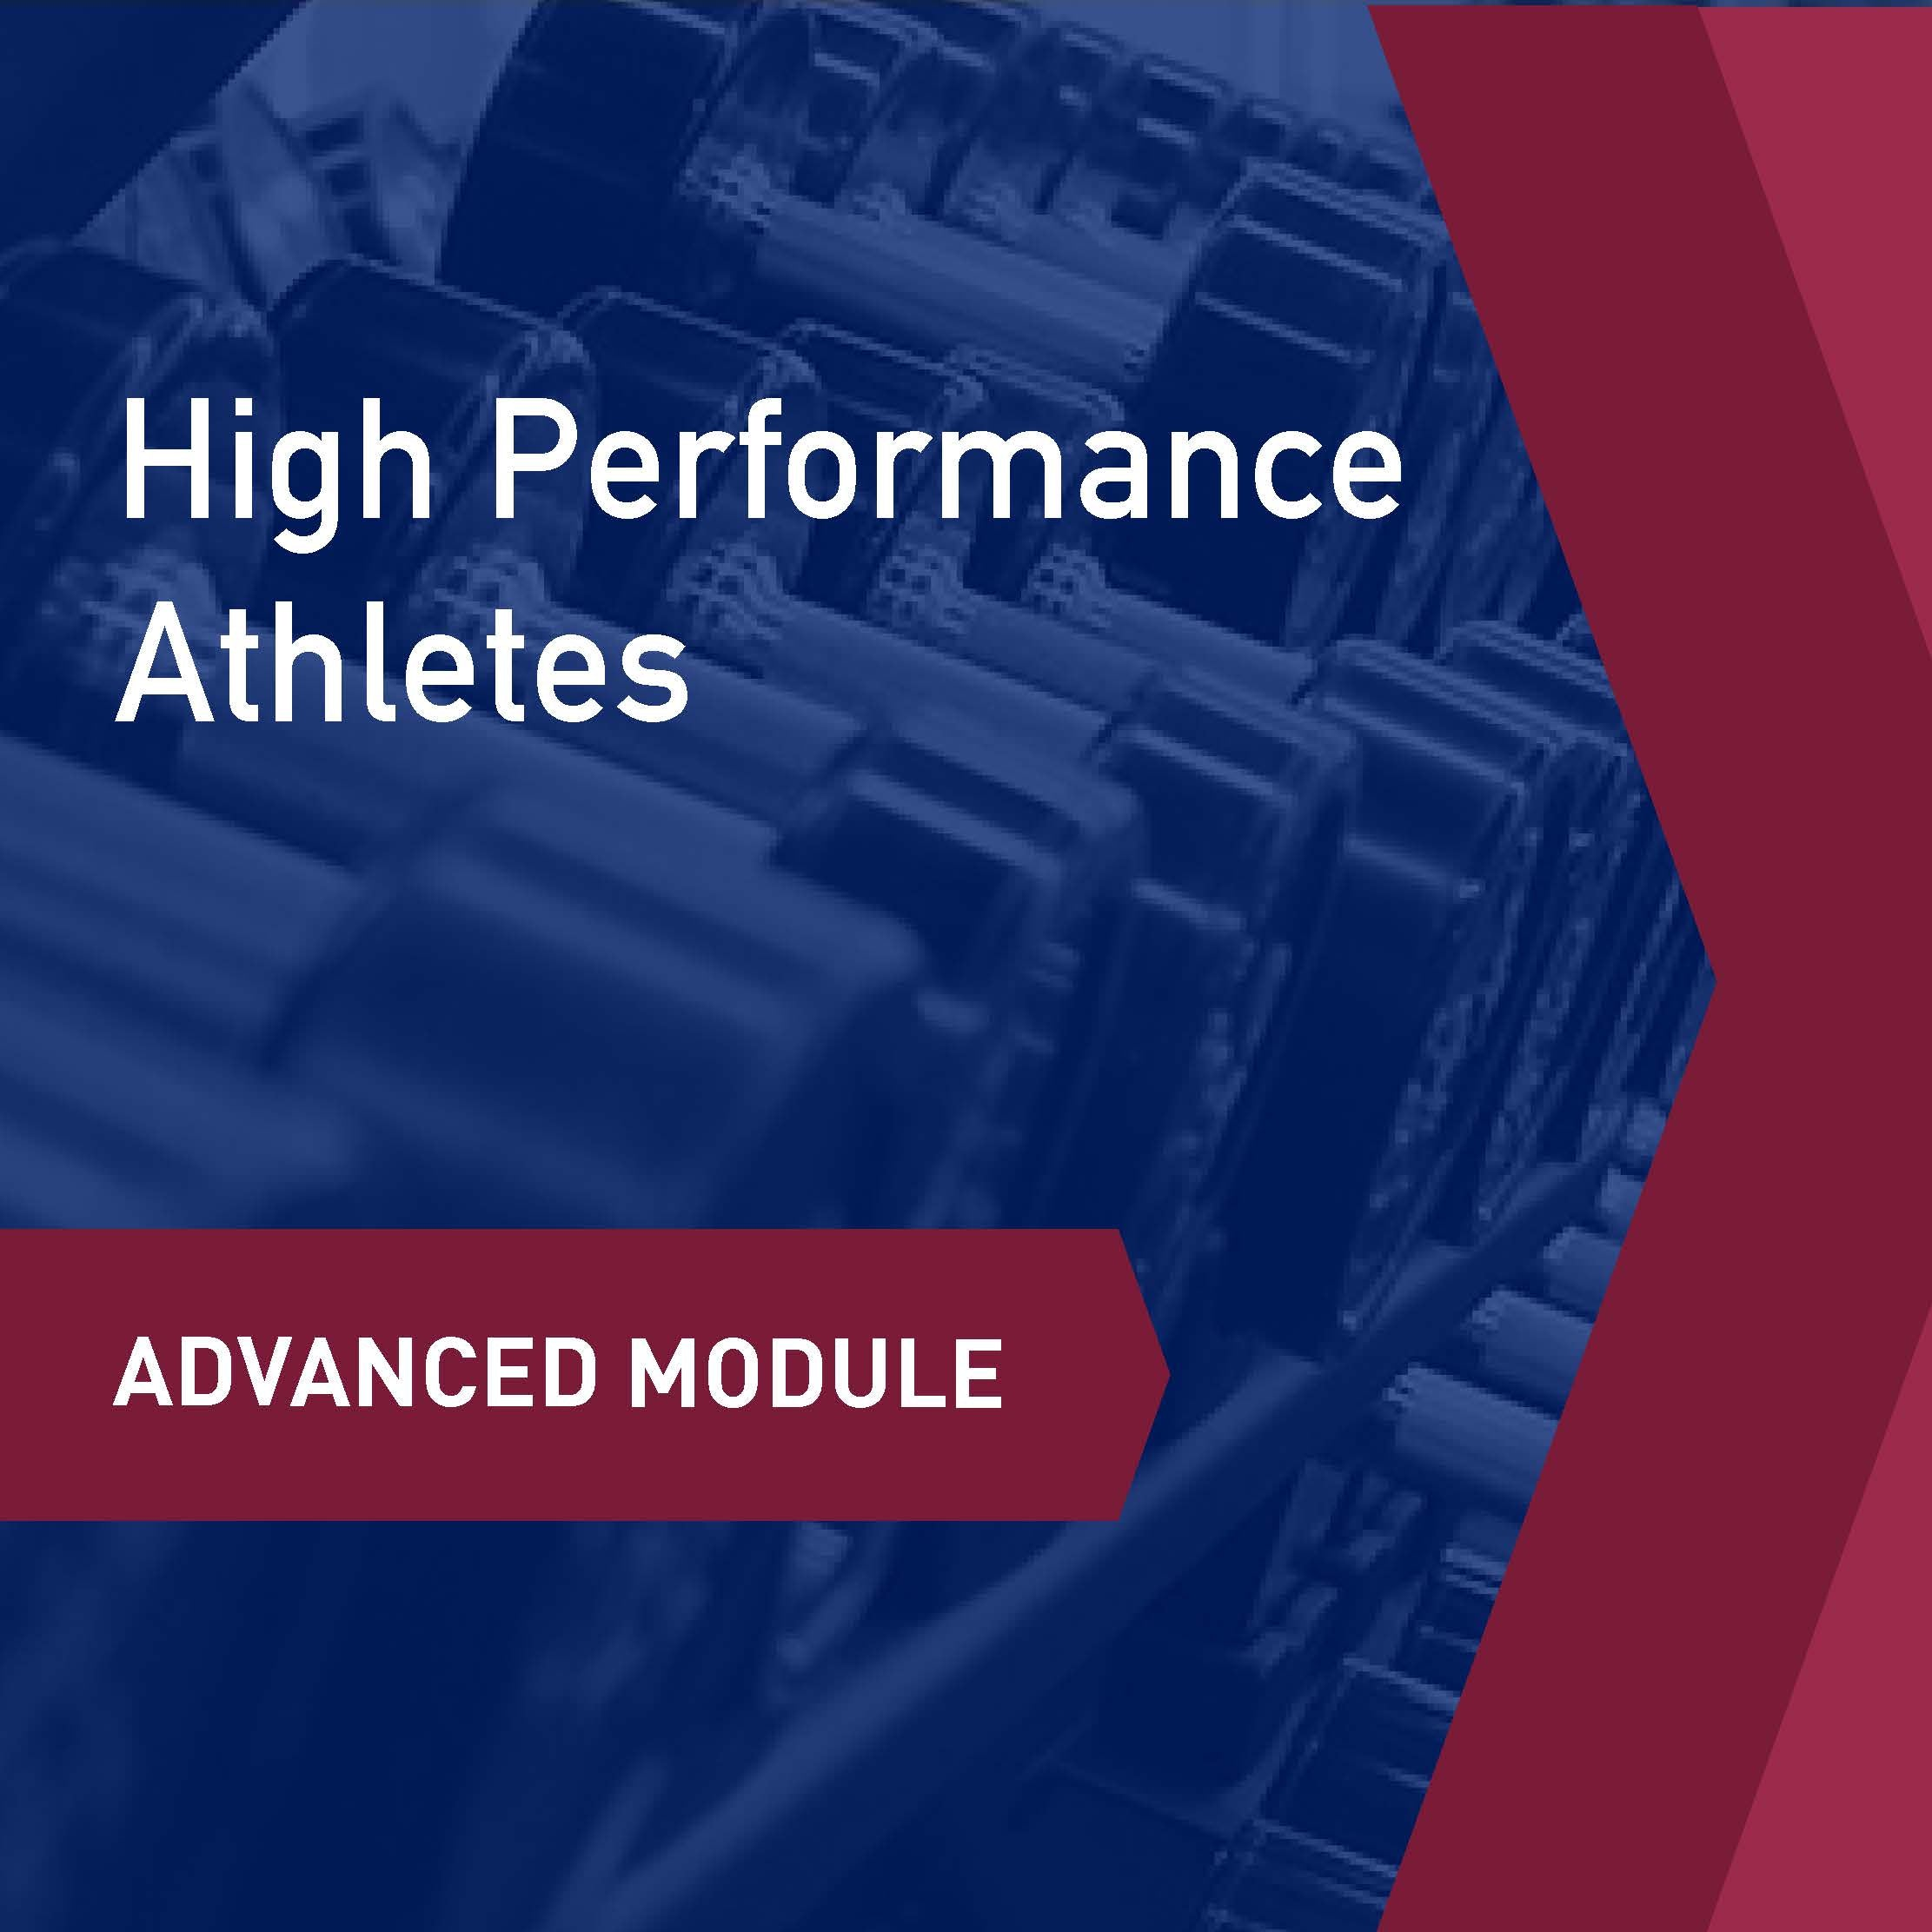 Advanced Learning Module: High Performance Athletes